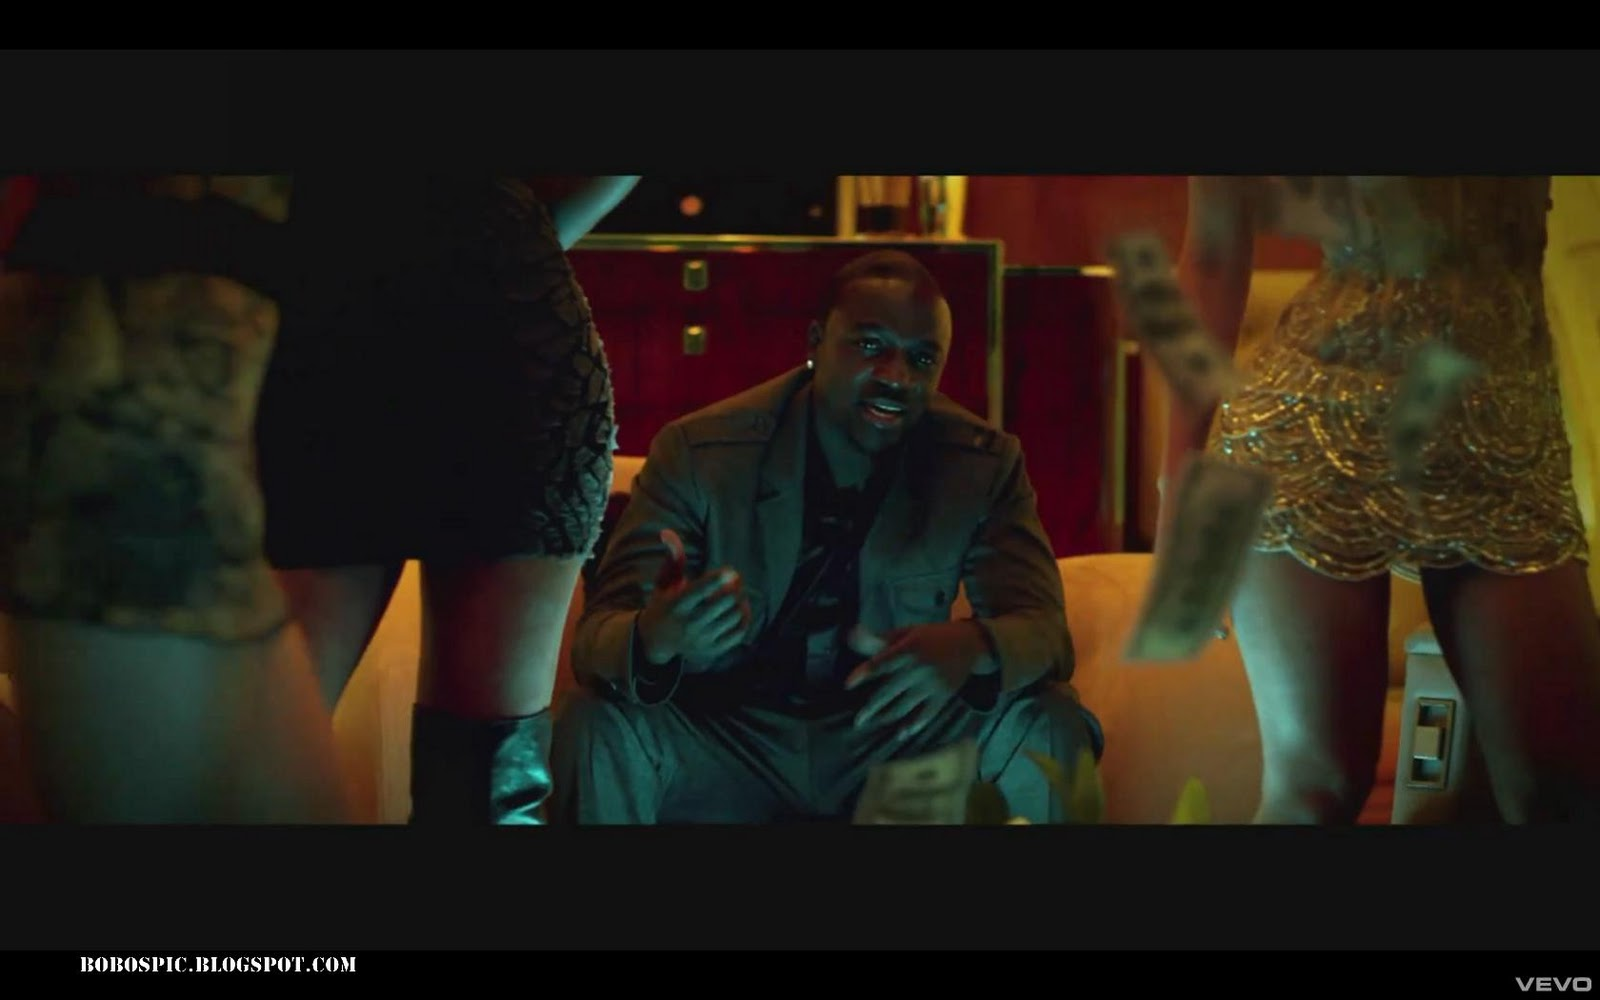 Music Video Pics: Dr. Dre - Kush ft. Snoop bet365 poker review bet365 program partnerski Dogg, Akon video pictures